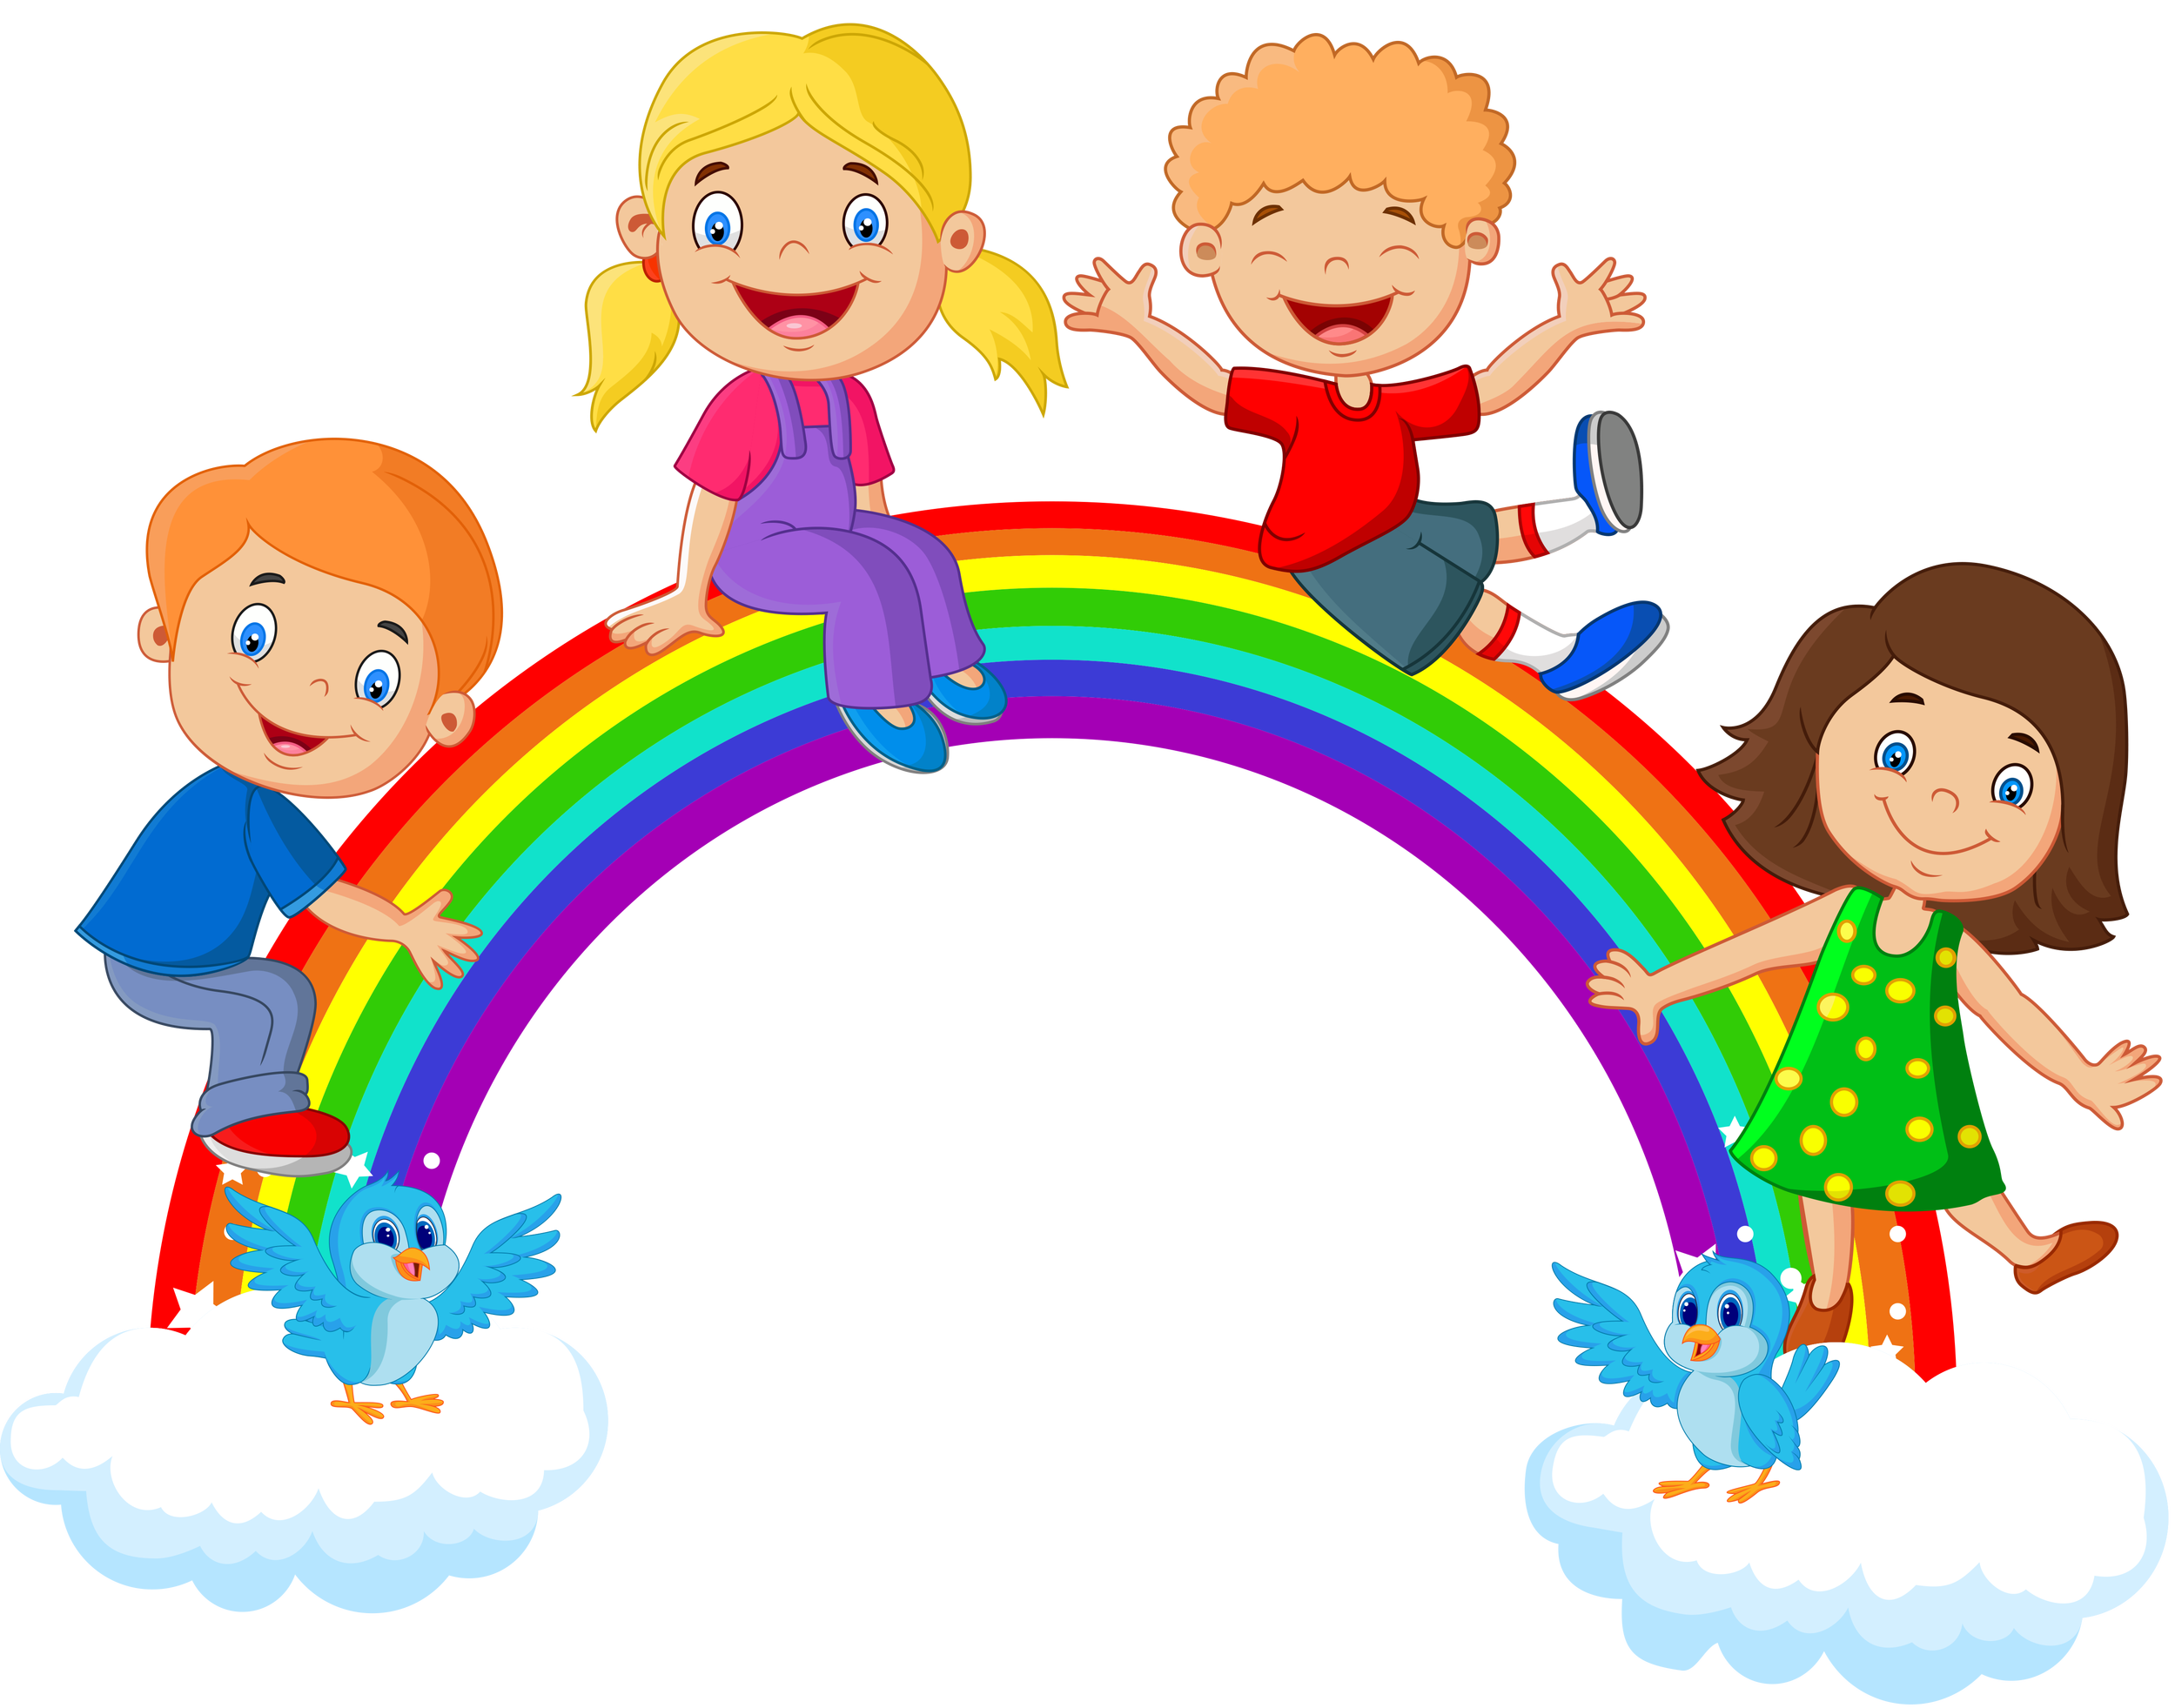 Children fun clipart png. Pinterest